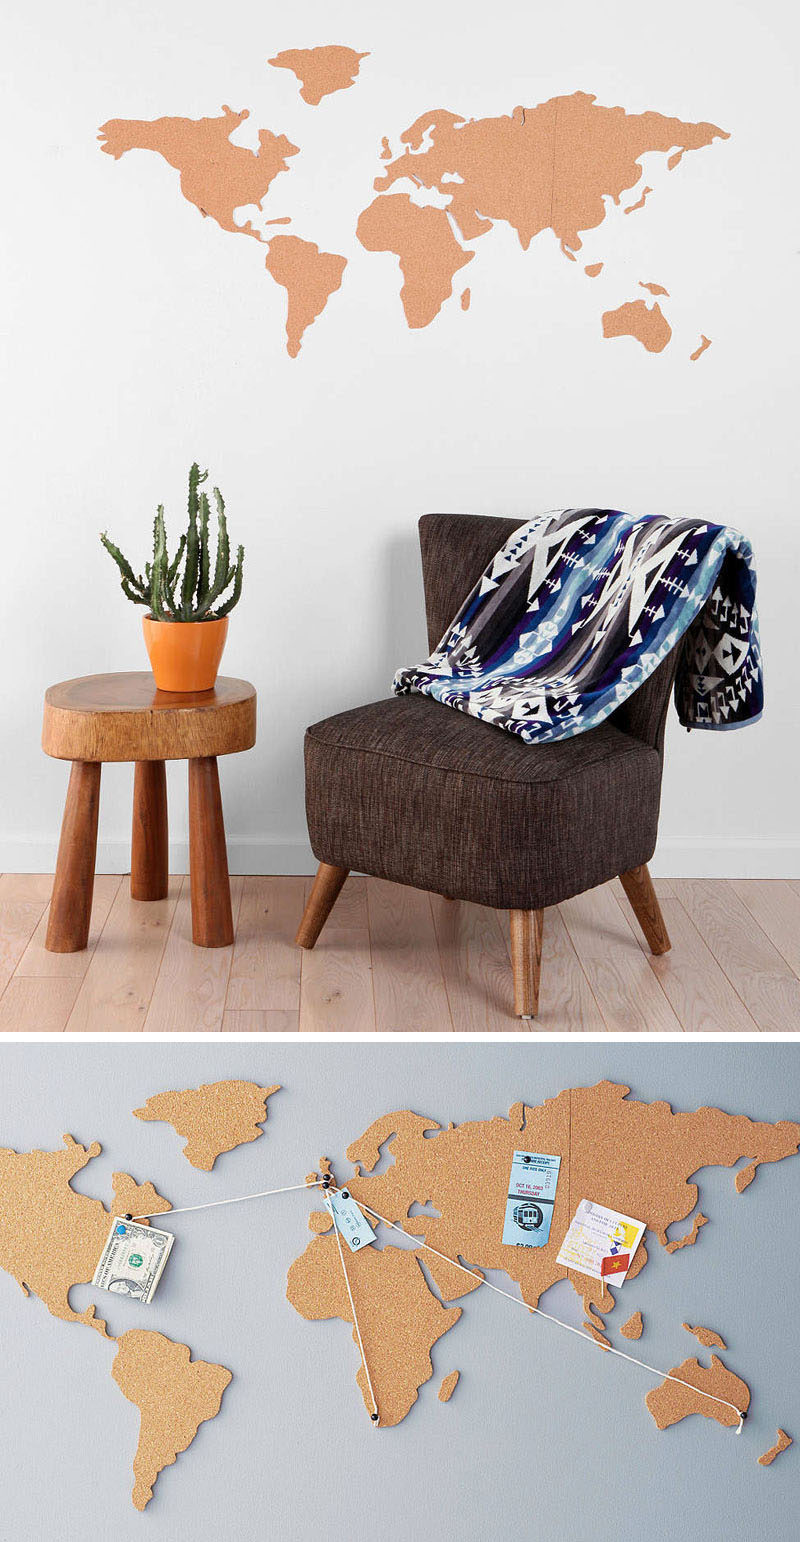 10 world map designs to decorate a plain wall contemporist keep track of your travels with a cork board map use pins and string to map your trips and stick little photos or keepsakes directly onto the map to create gumiabroncs Choice Image